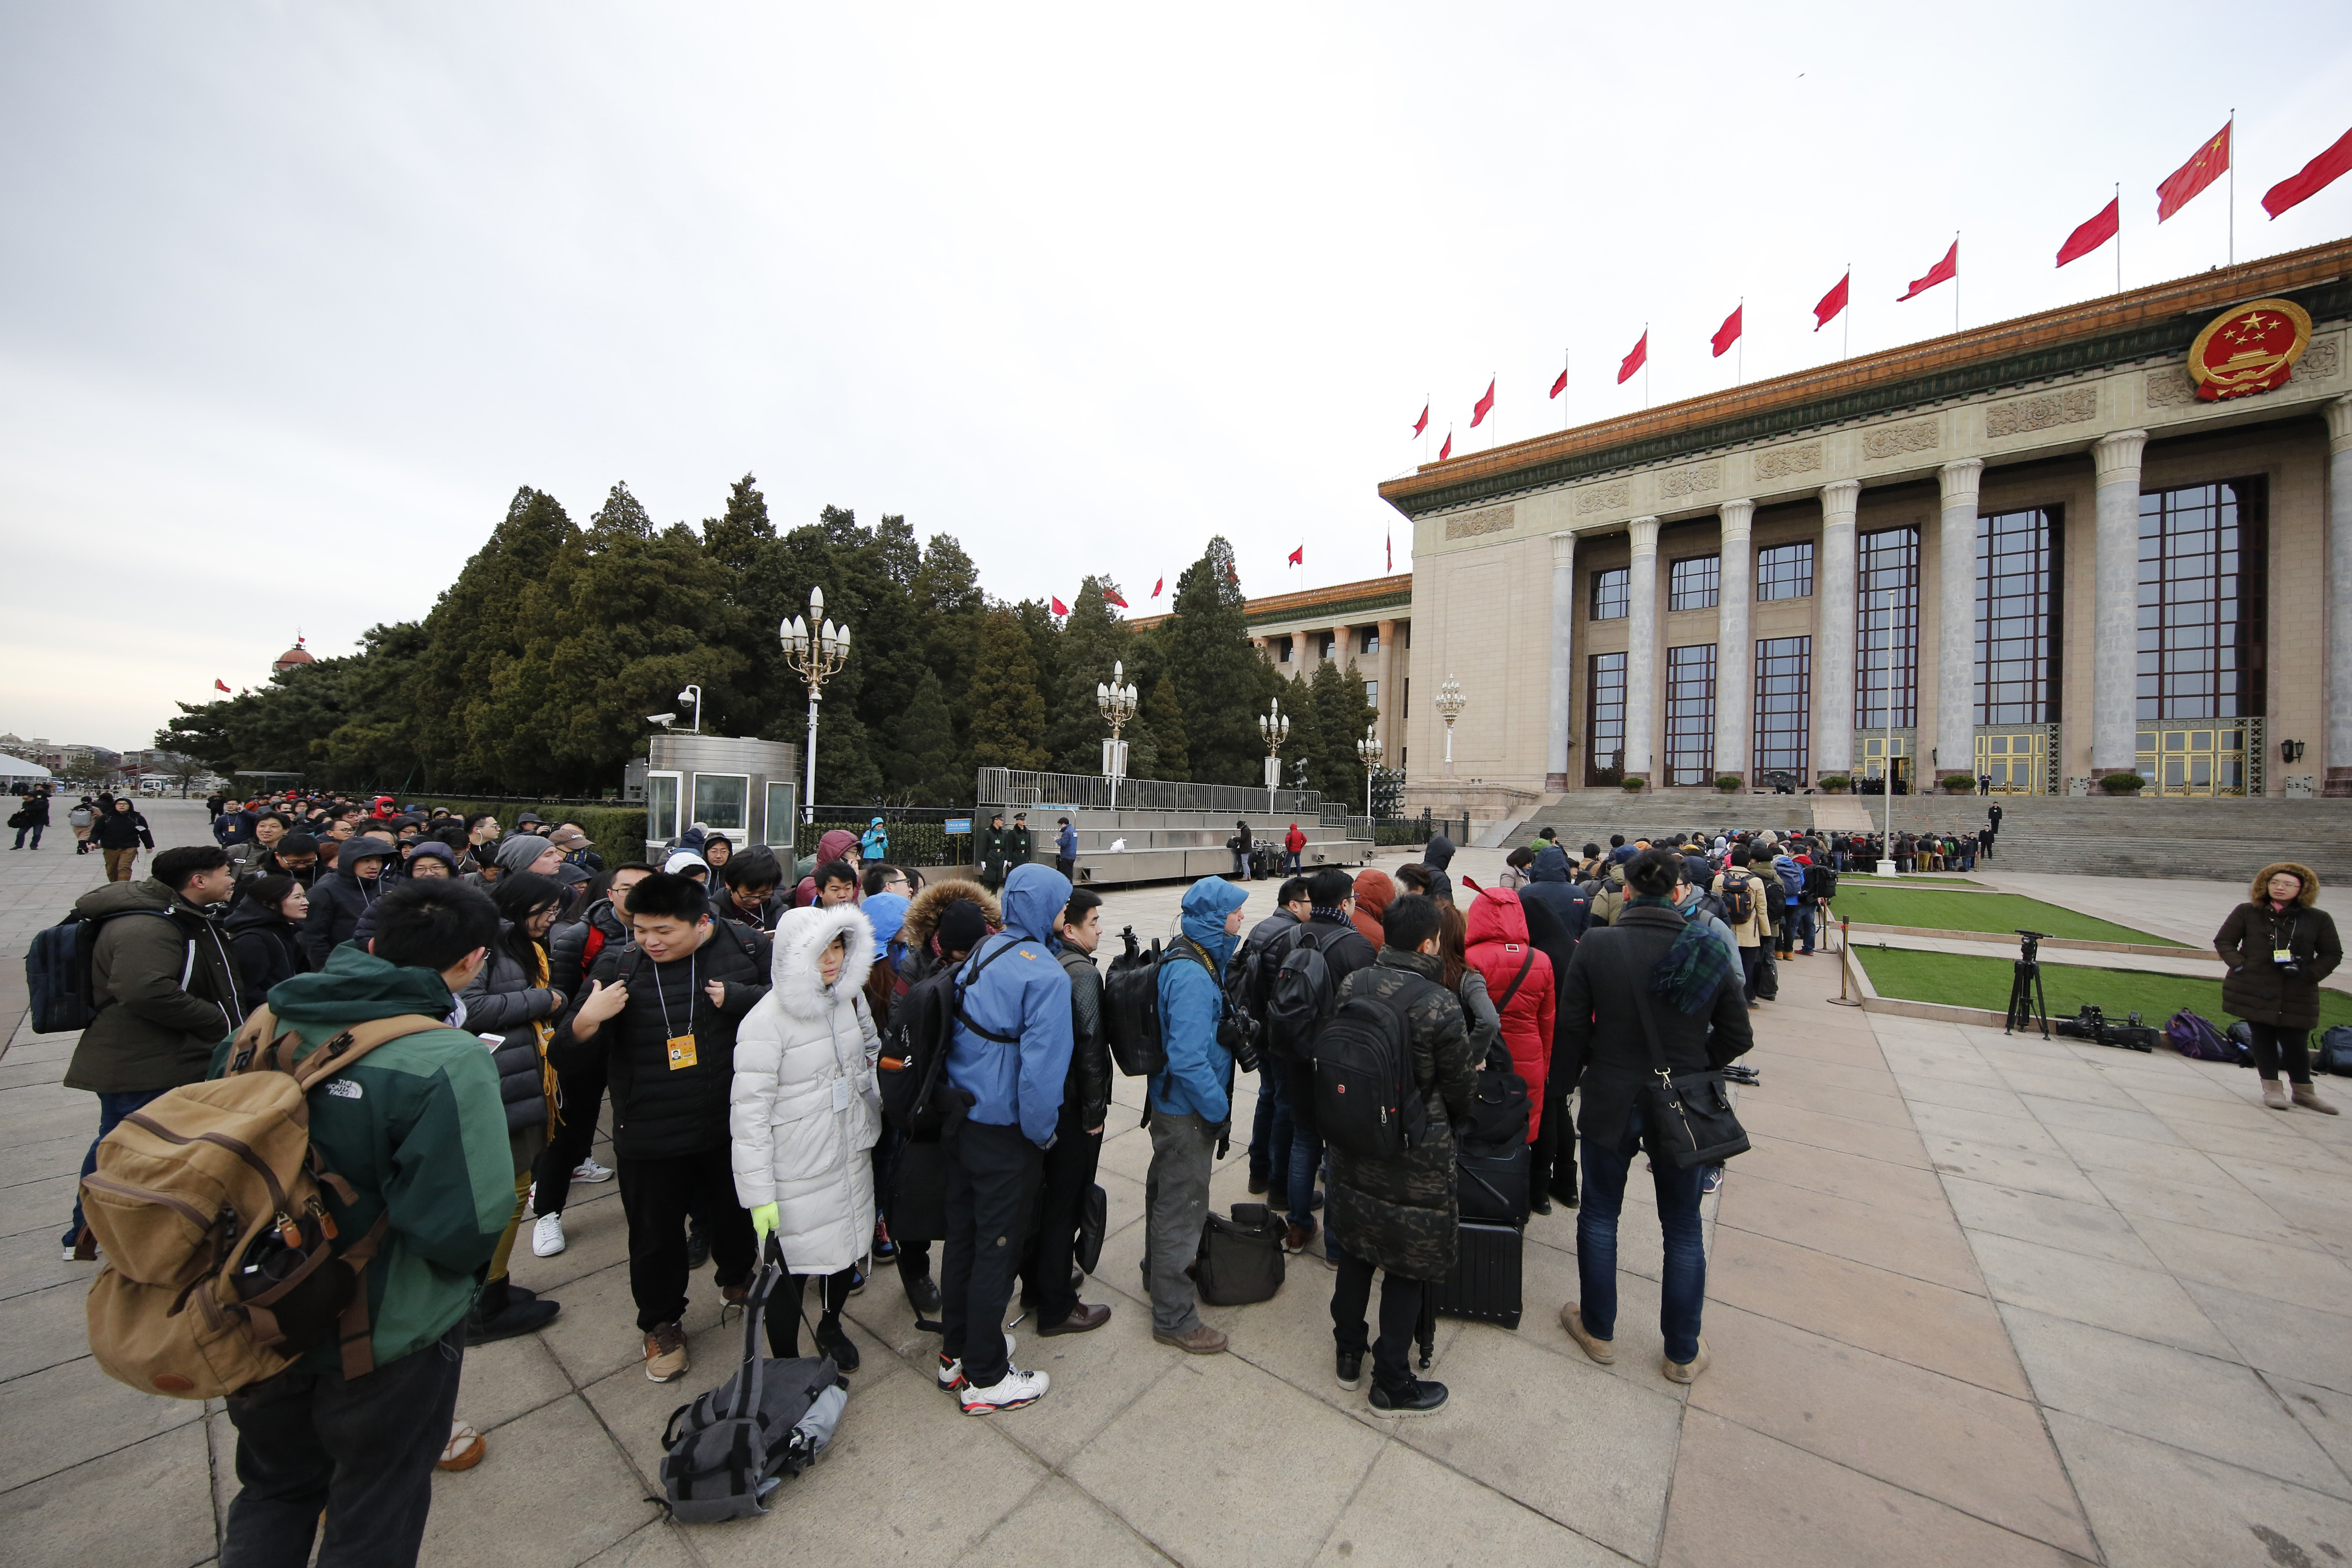 China Politics Local and foreign journalists line up to enter the Great Hall of the People to cover the opening session of the annual National People's Congress in Beijing, Sunday, March 5, 2017. China's top leadership as well as thousands of delegates from around the country are gathered at the Chinese capital for the annual legislature meetings. (AP Photo/Andy Wong)